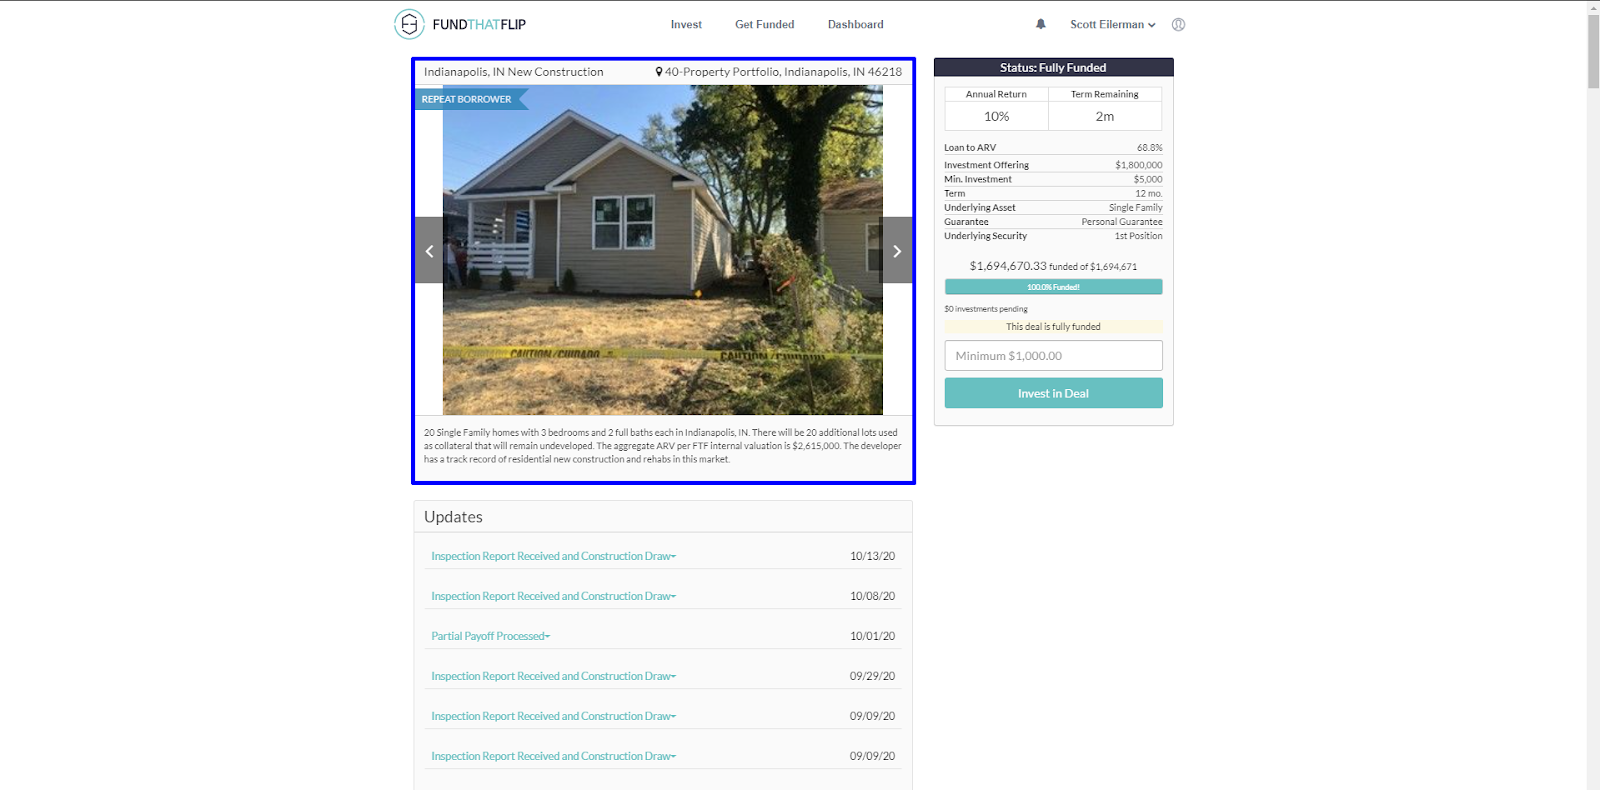 In addition to viewing the property address, you can scroll through the photos to see the current condition of the property (and sometimes the subject to plans).